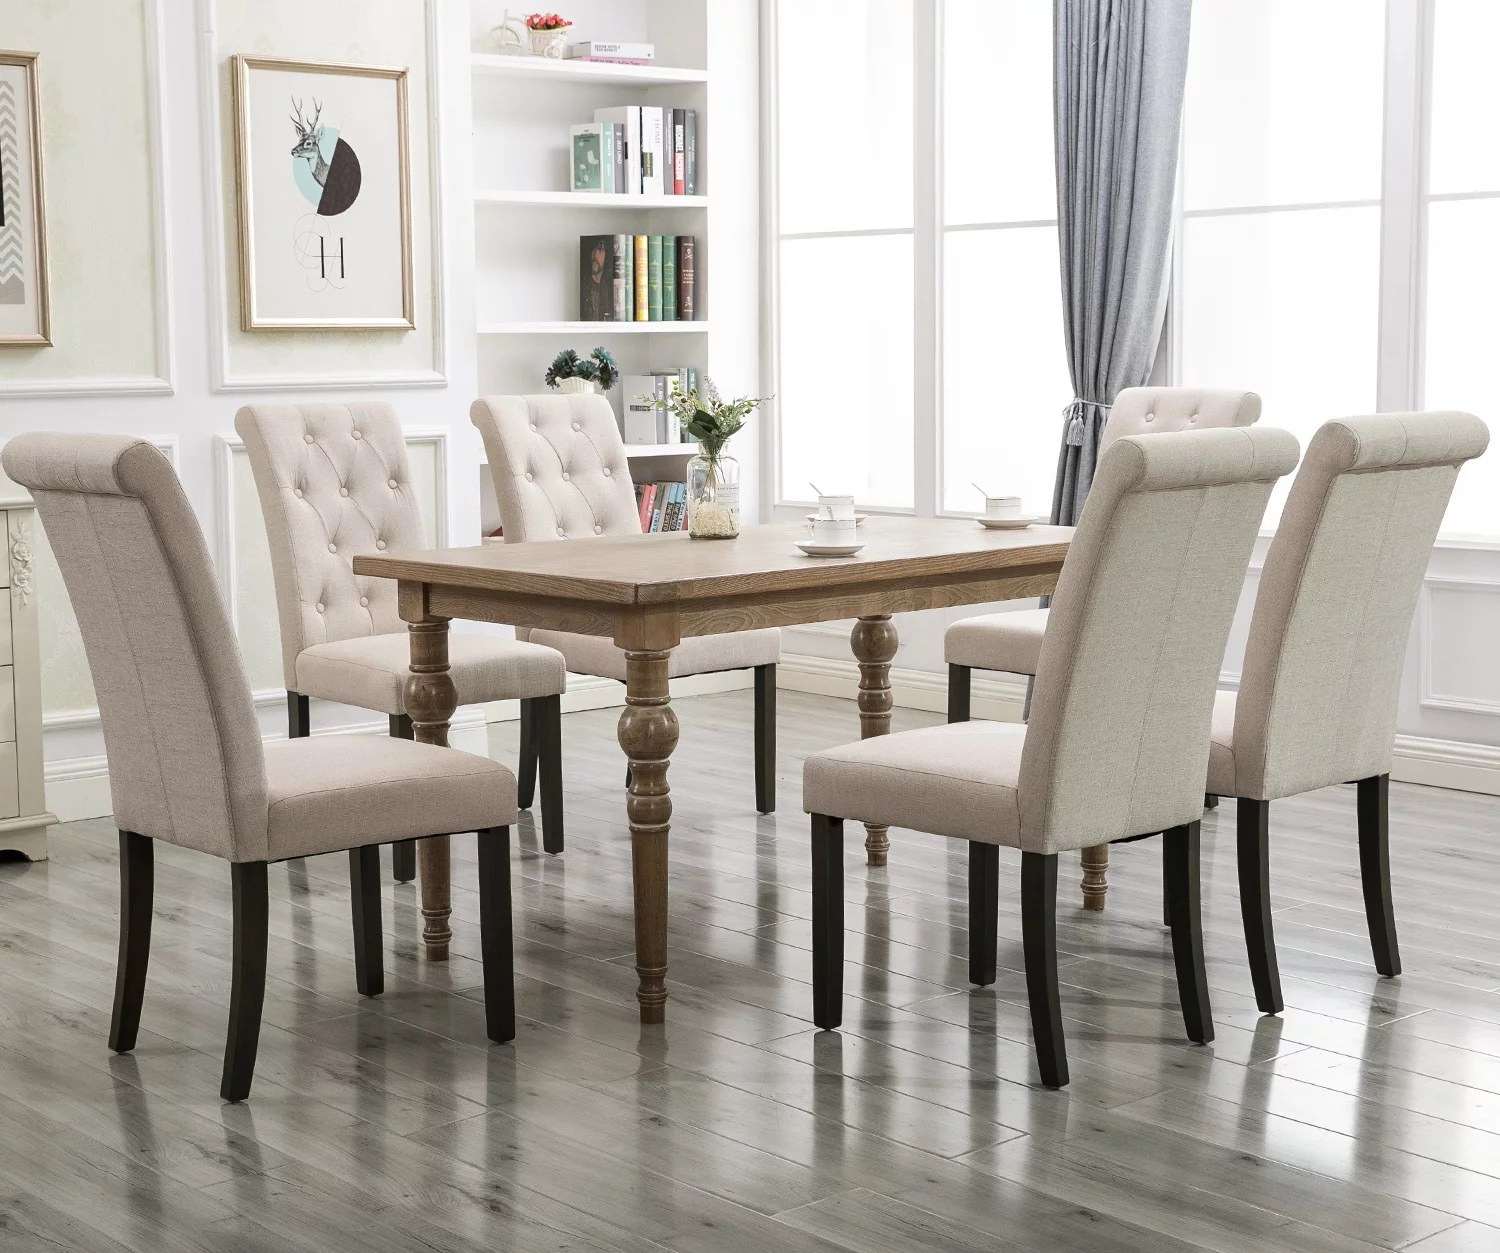 Clearance Tufted Parsons Dining Chairs Set Of 2 39 8 X22 4 X17 5